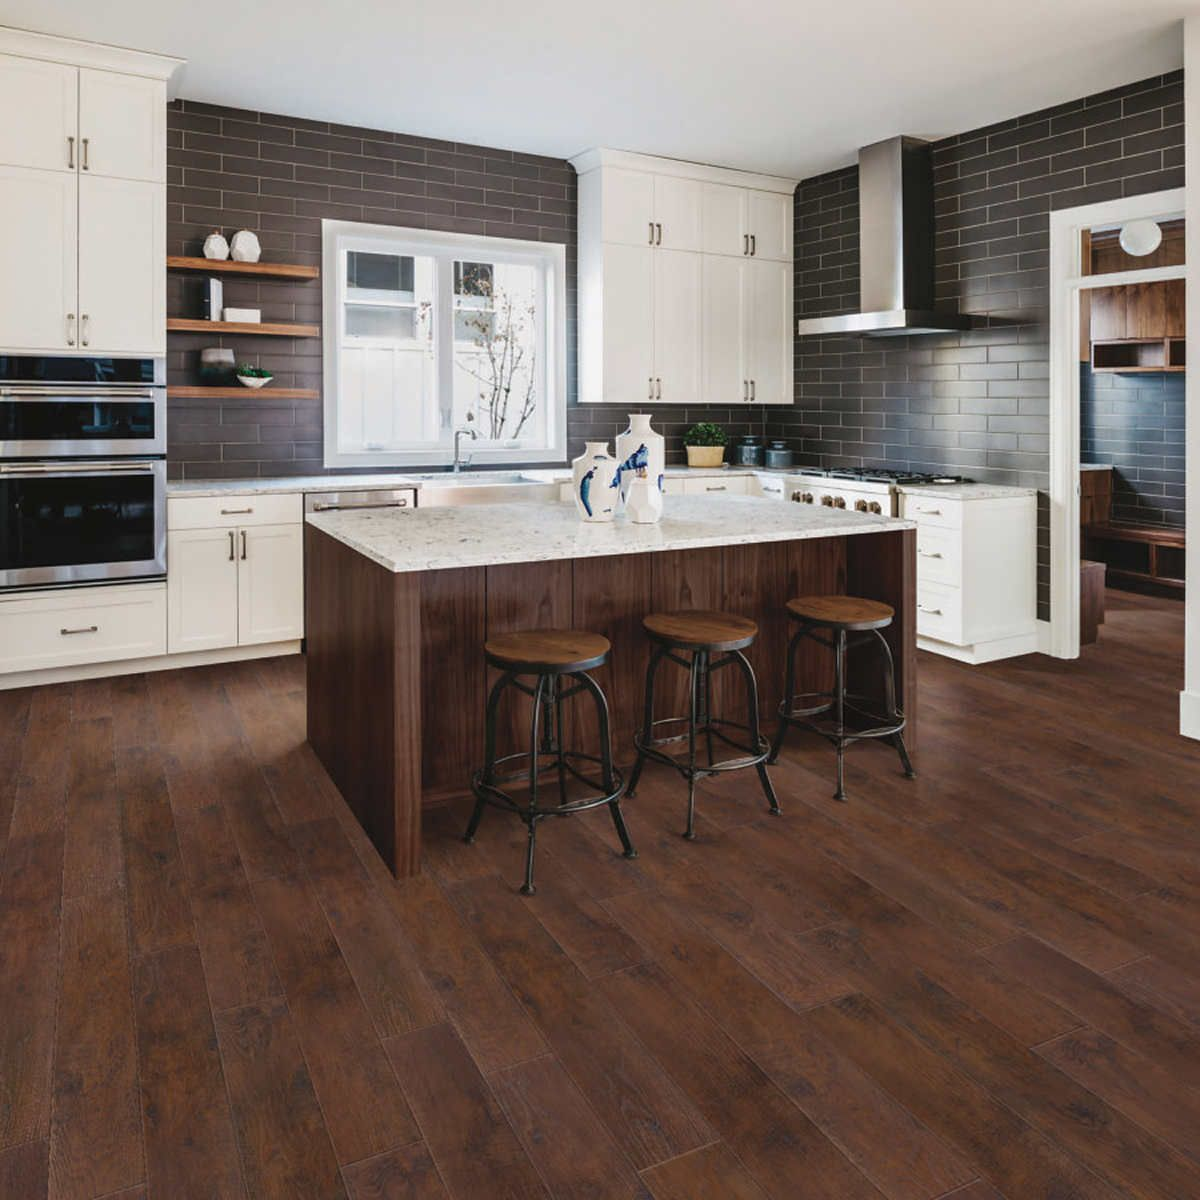 Mohawk Home Rustic Spiced Oak 10mm Thick Laminate Flooring